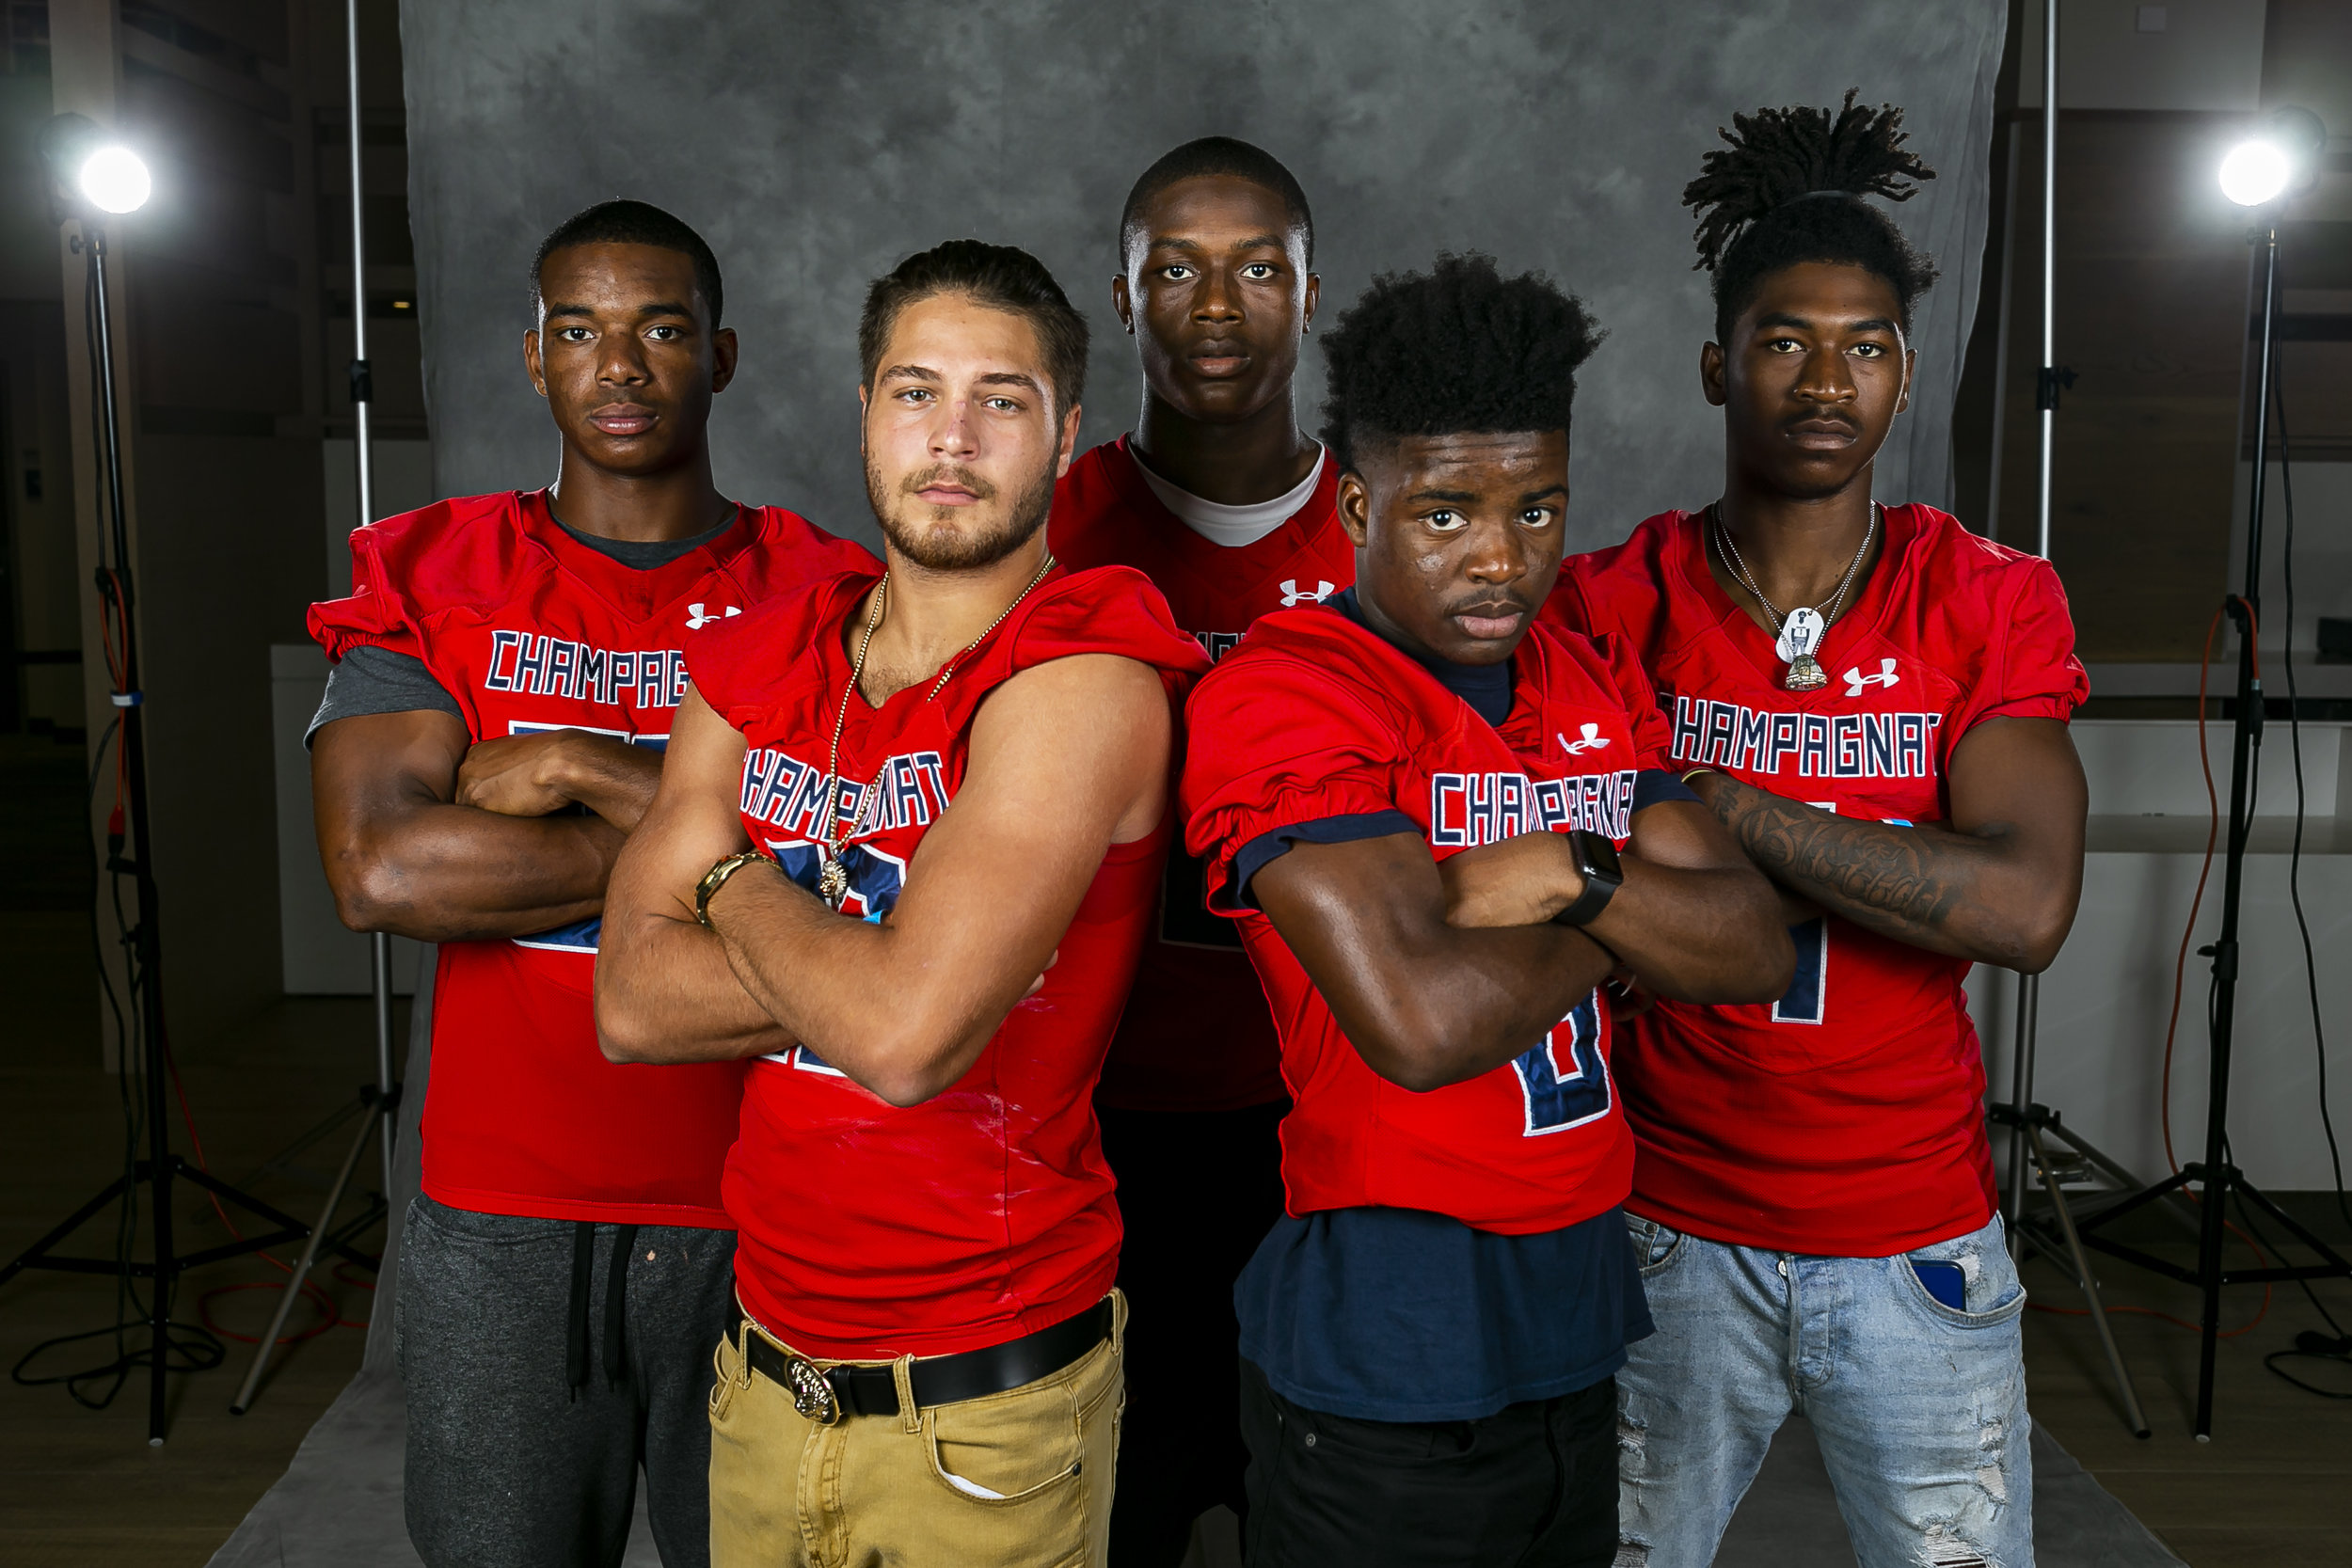 From left to right: Jesus Machado, Ryle Aguila, Jalen Harrell, Malik Rutherford and Johnquai Lewis from Champagnat Catholic High School, attend High School Football Media Day at the Hard Rock Stadium in Miami Gardens on Saturday, August 3, 2019.